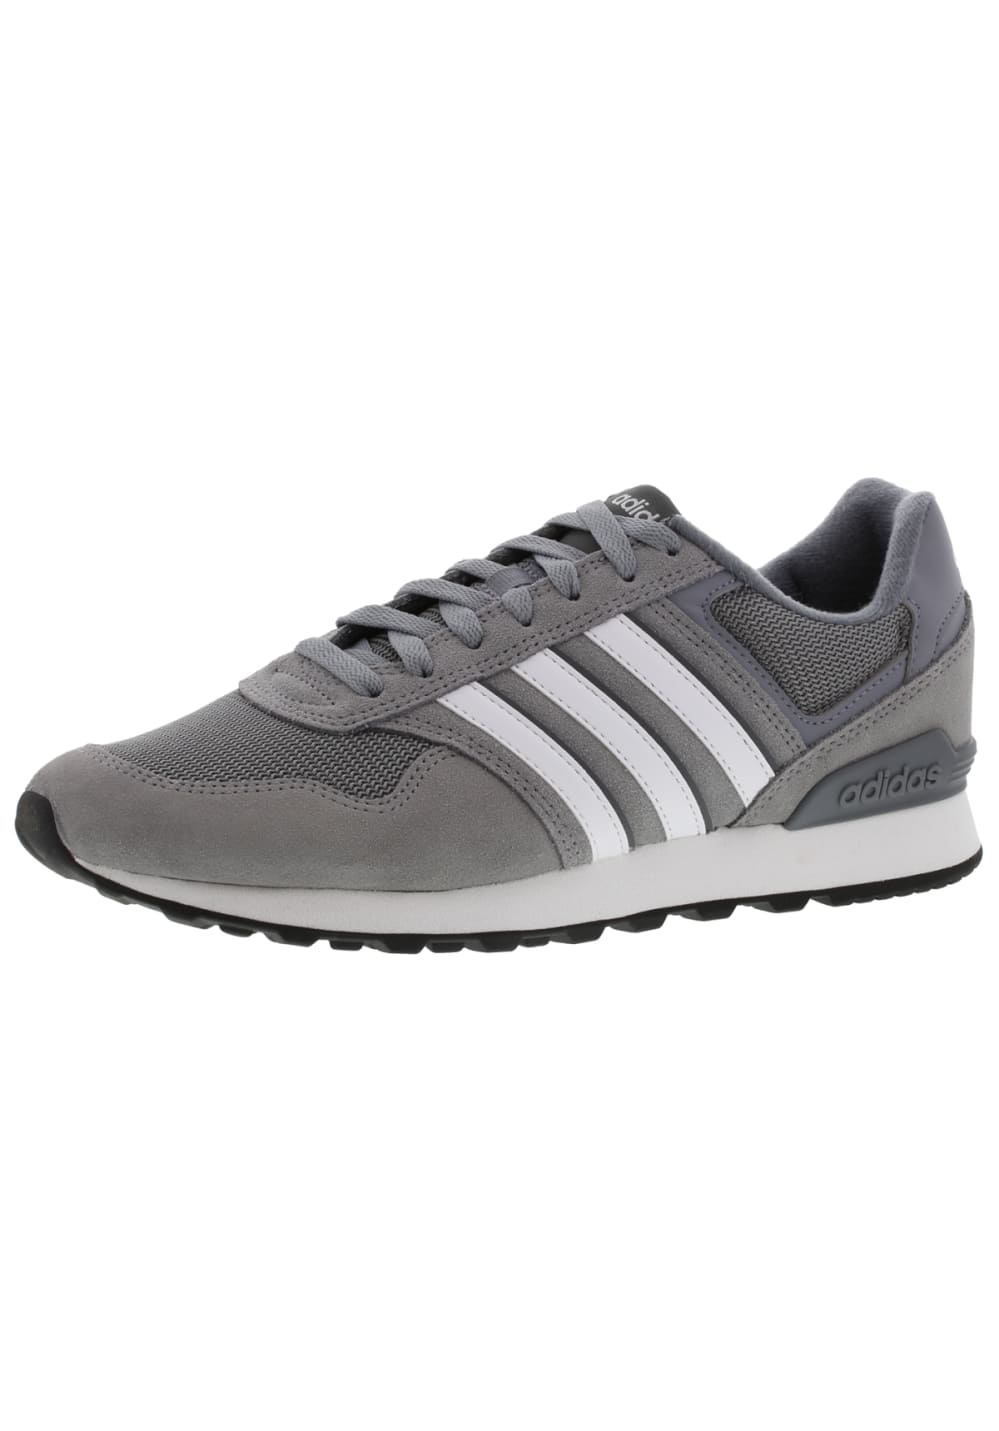 Chaussures Adidas femme | adidas 10K Chaussures Gris